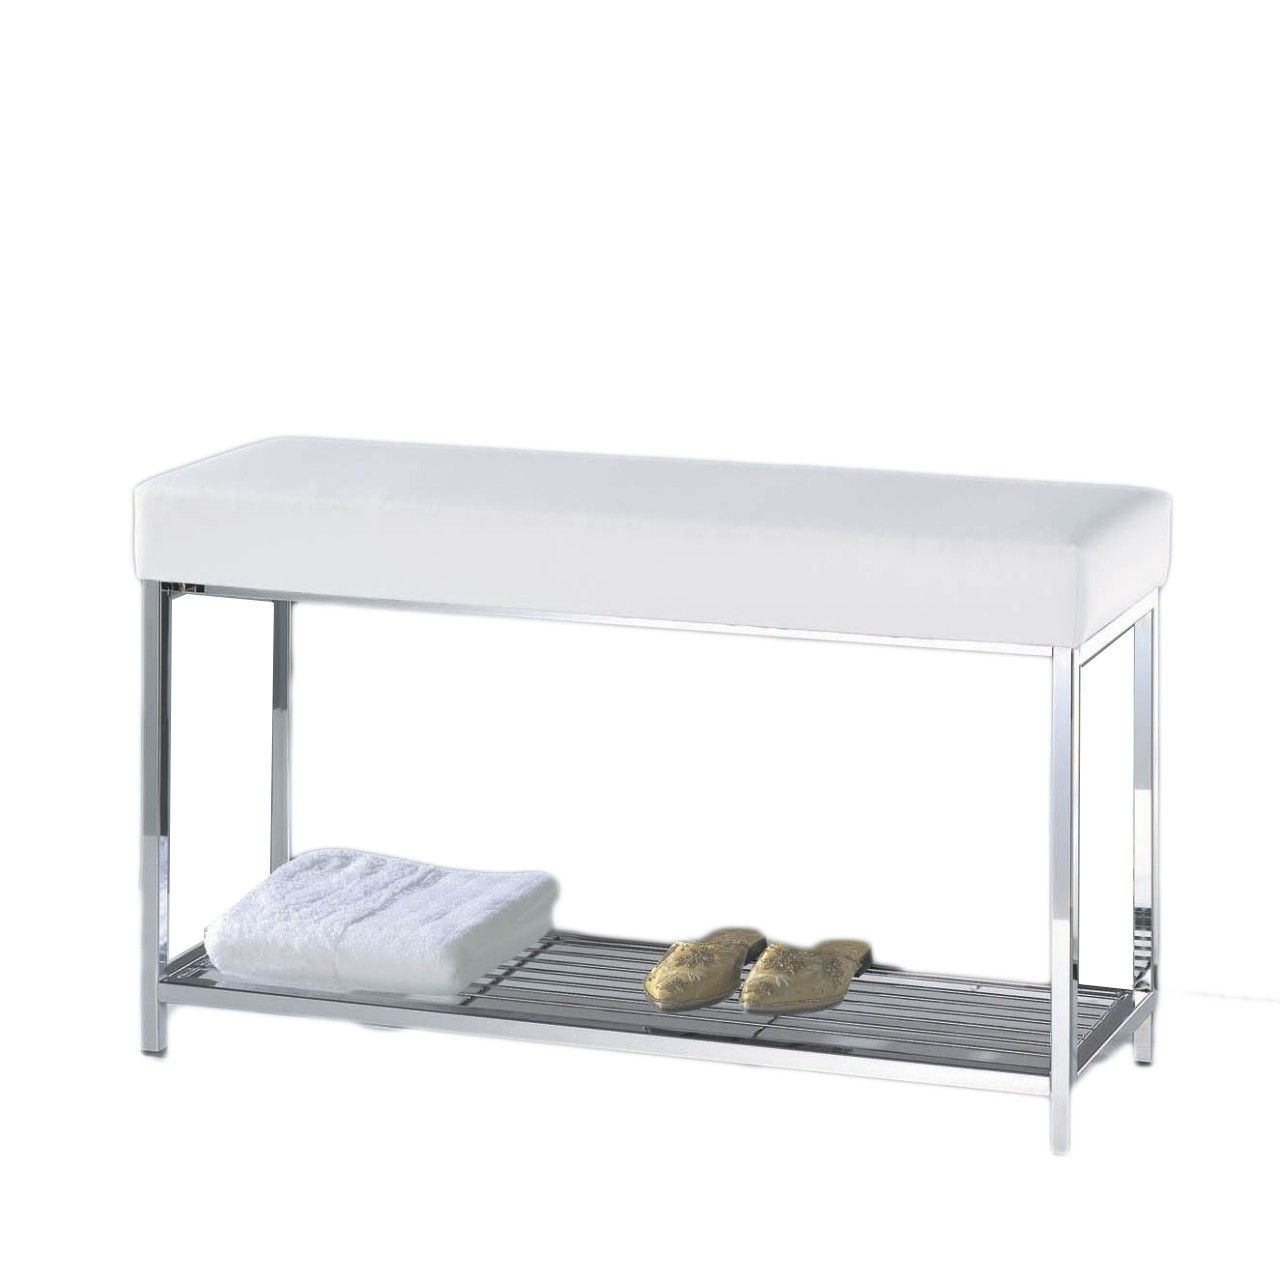 Harmony 8 Bench with Shelf in Chrome with Black or White Top